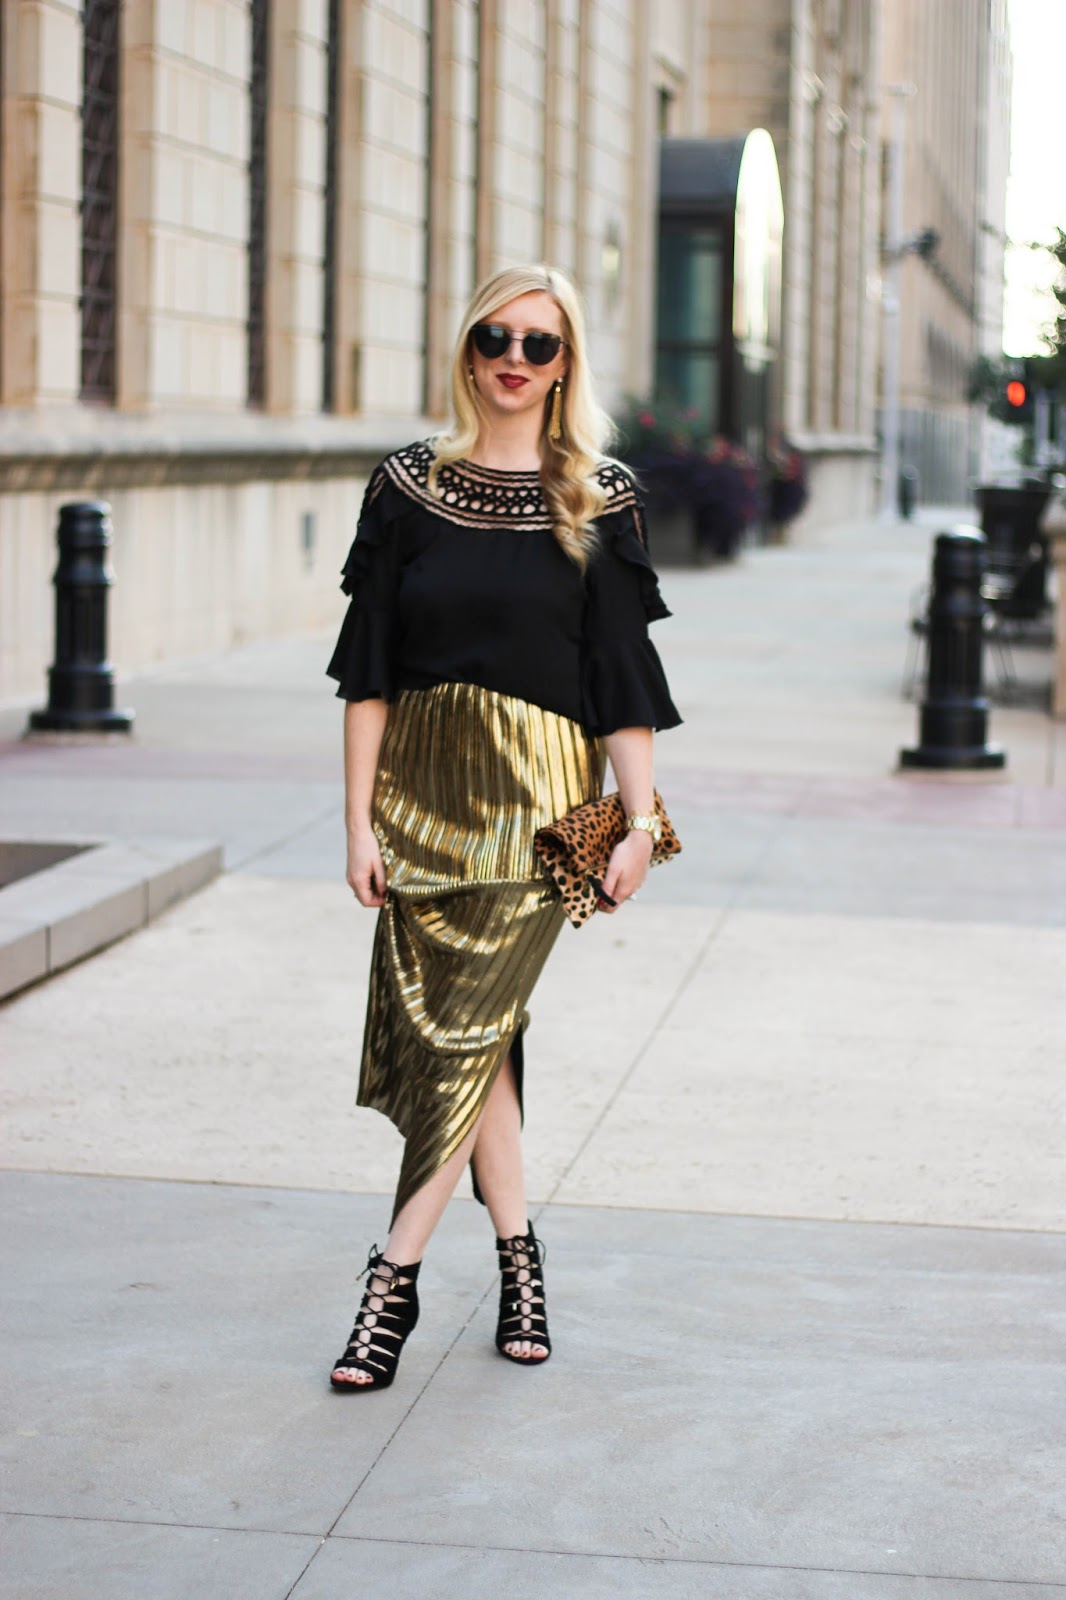 Holiday Ready in a Gold Pleated Skirt and Black Bell Sleeves by Washington DC fashion blogger Styled Blonde